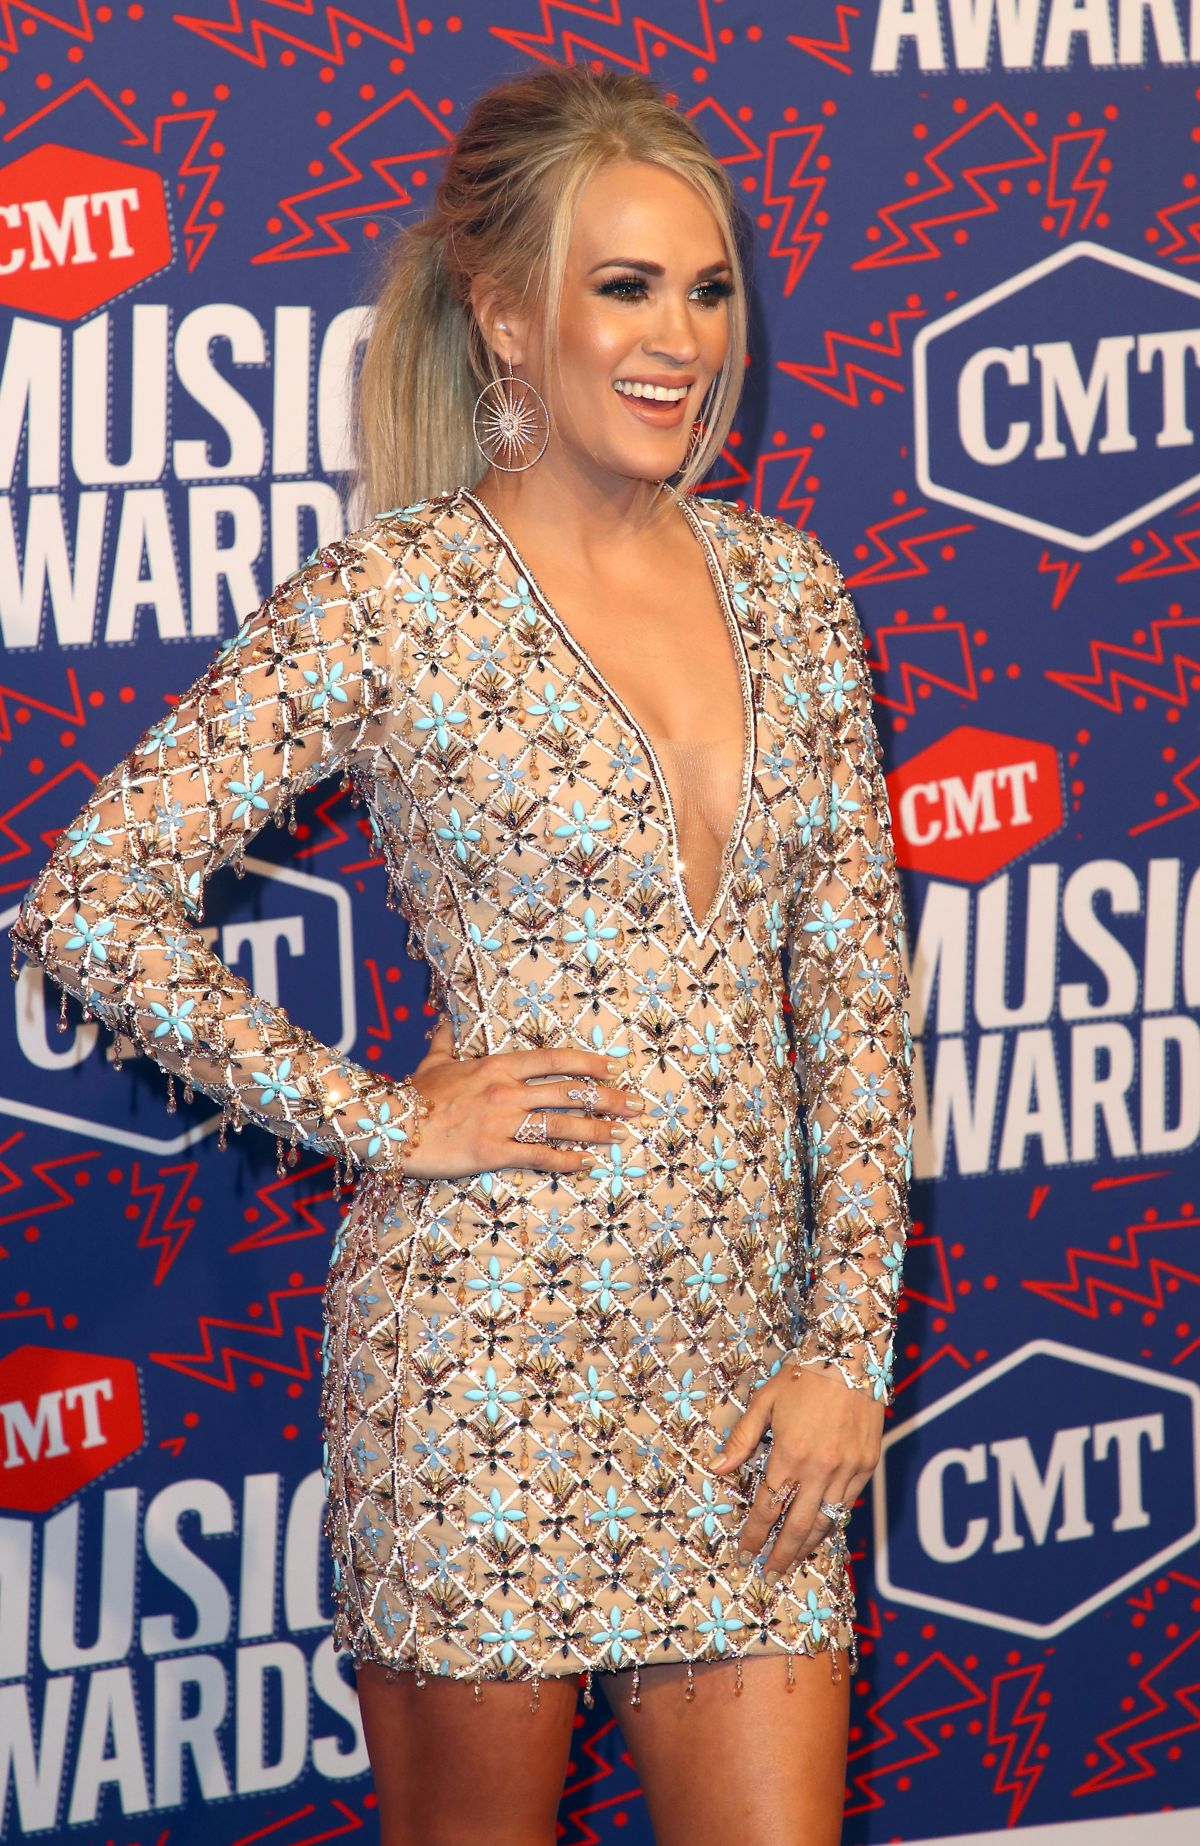 Carrie Underwood At 2019 Cmt Music Awards In Nashville 06